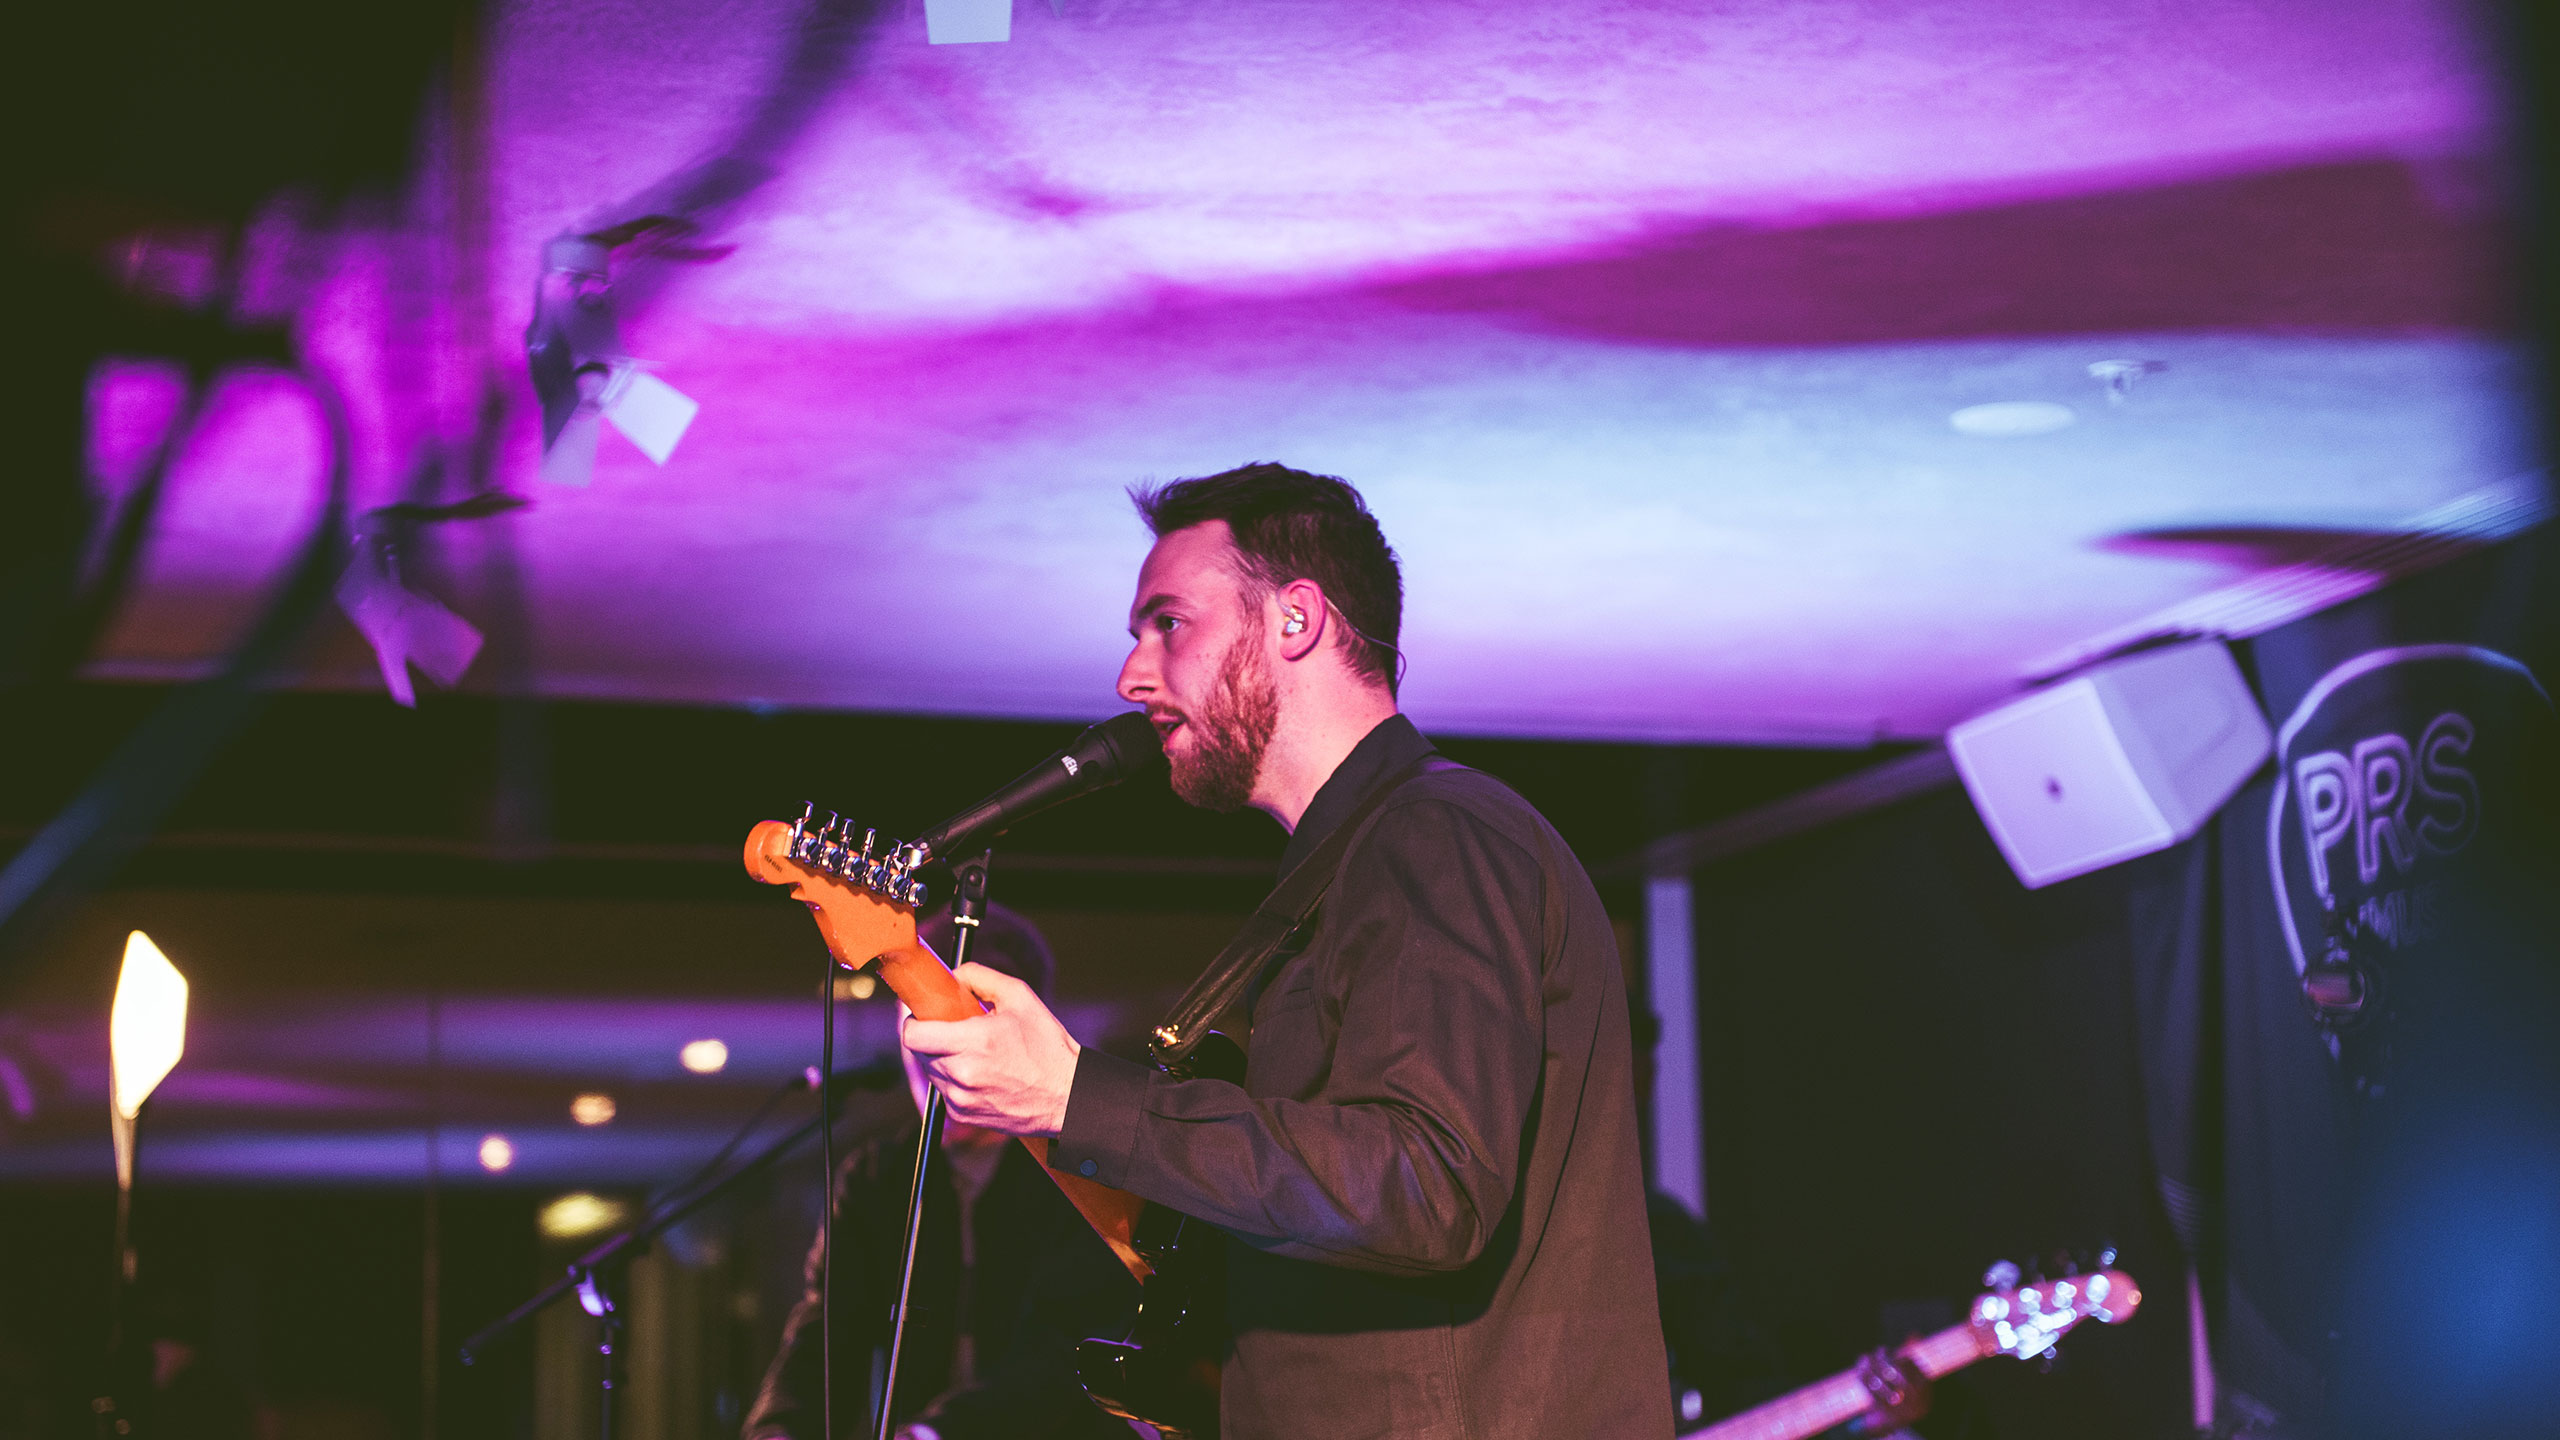 A shot from the side of Honne's Andy Clutterbuck singing and playing guitar on stage at PRS Presents